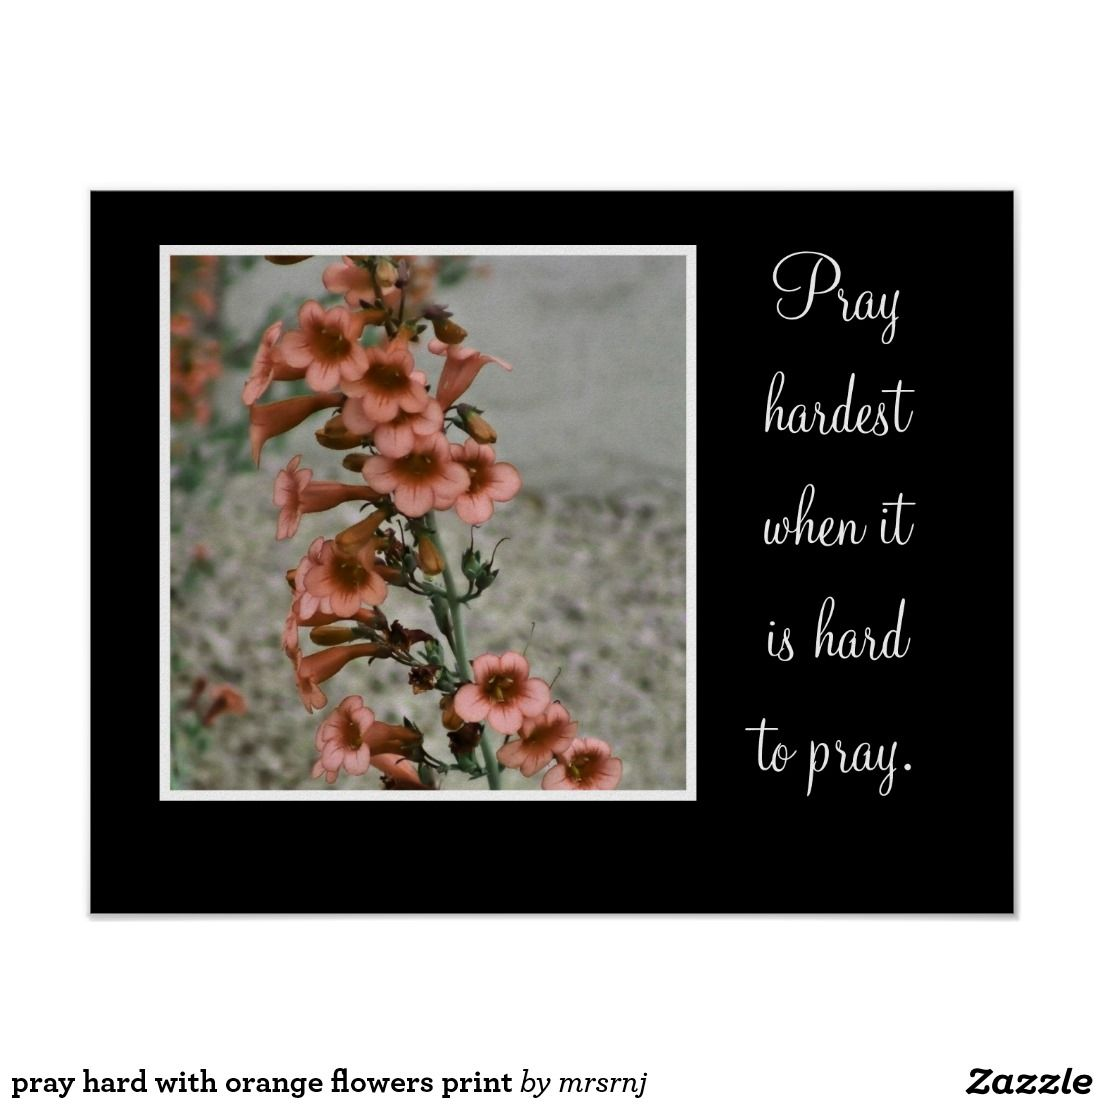 pray hard with orange flowers print